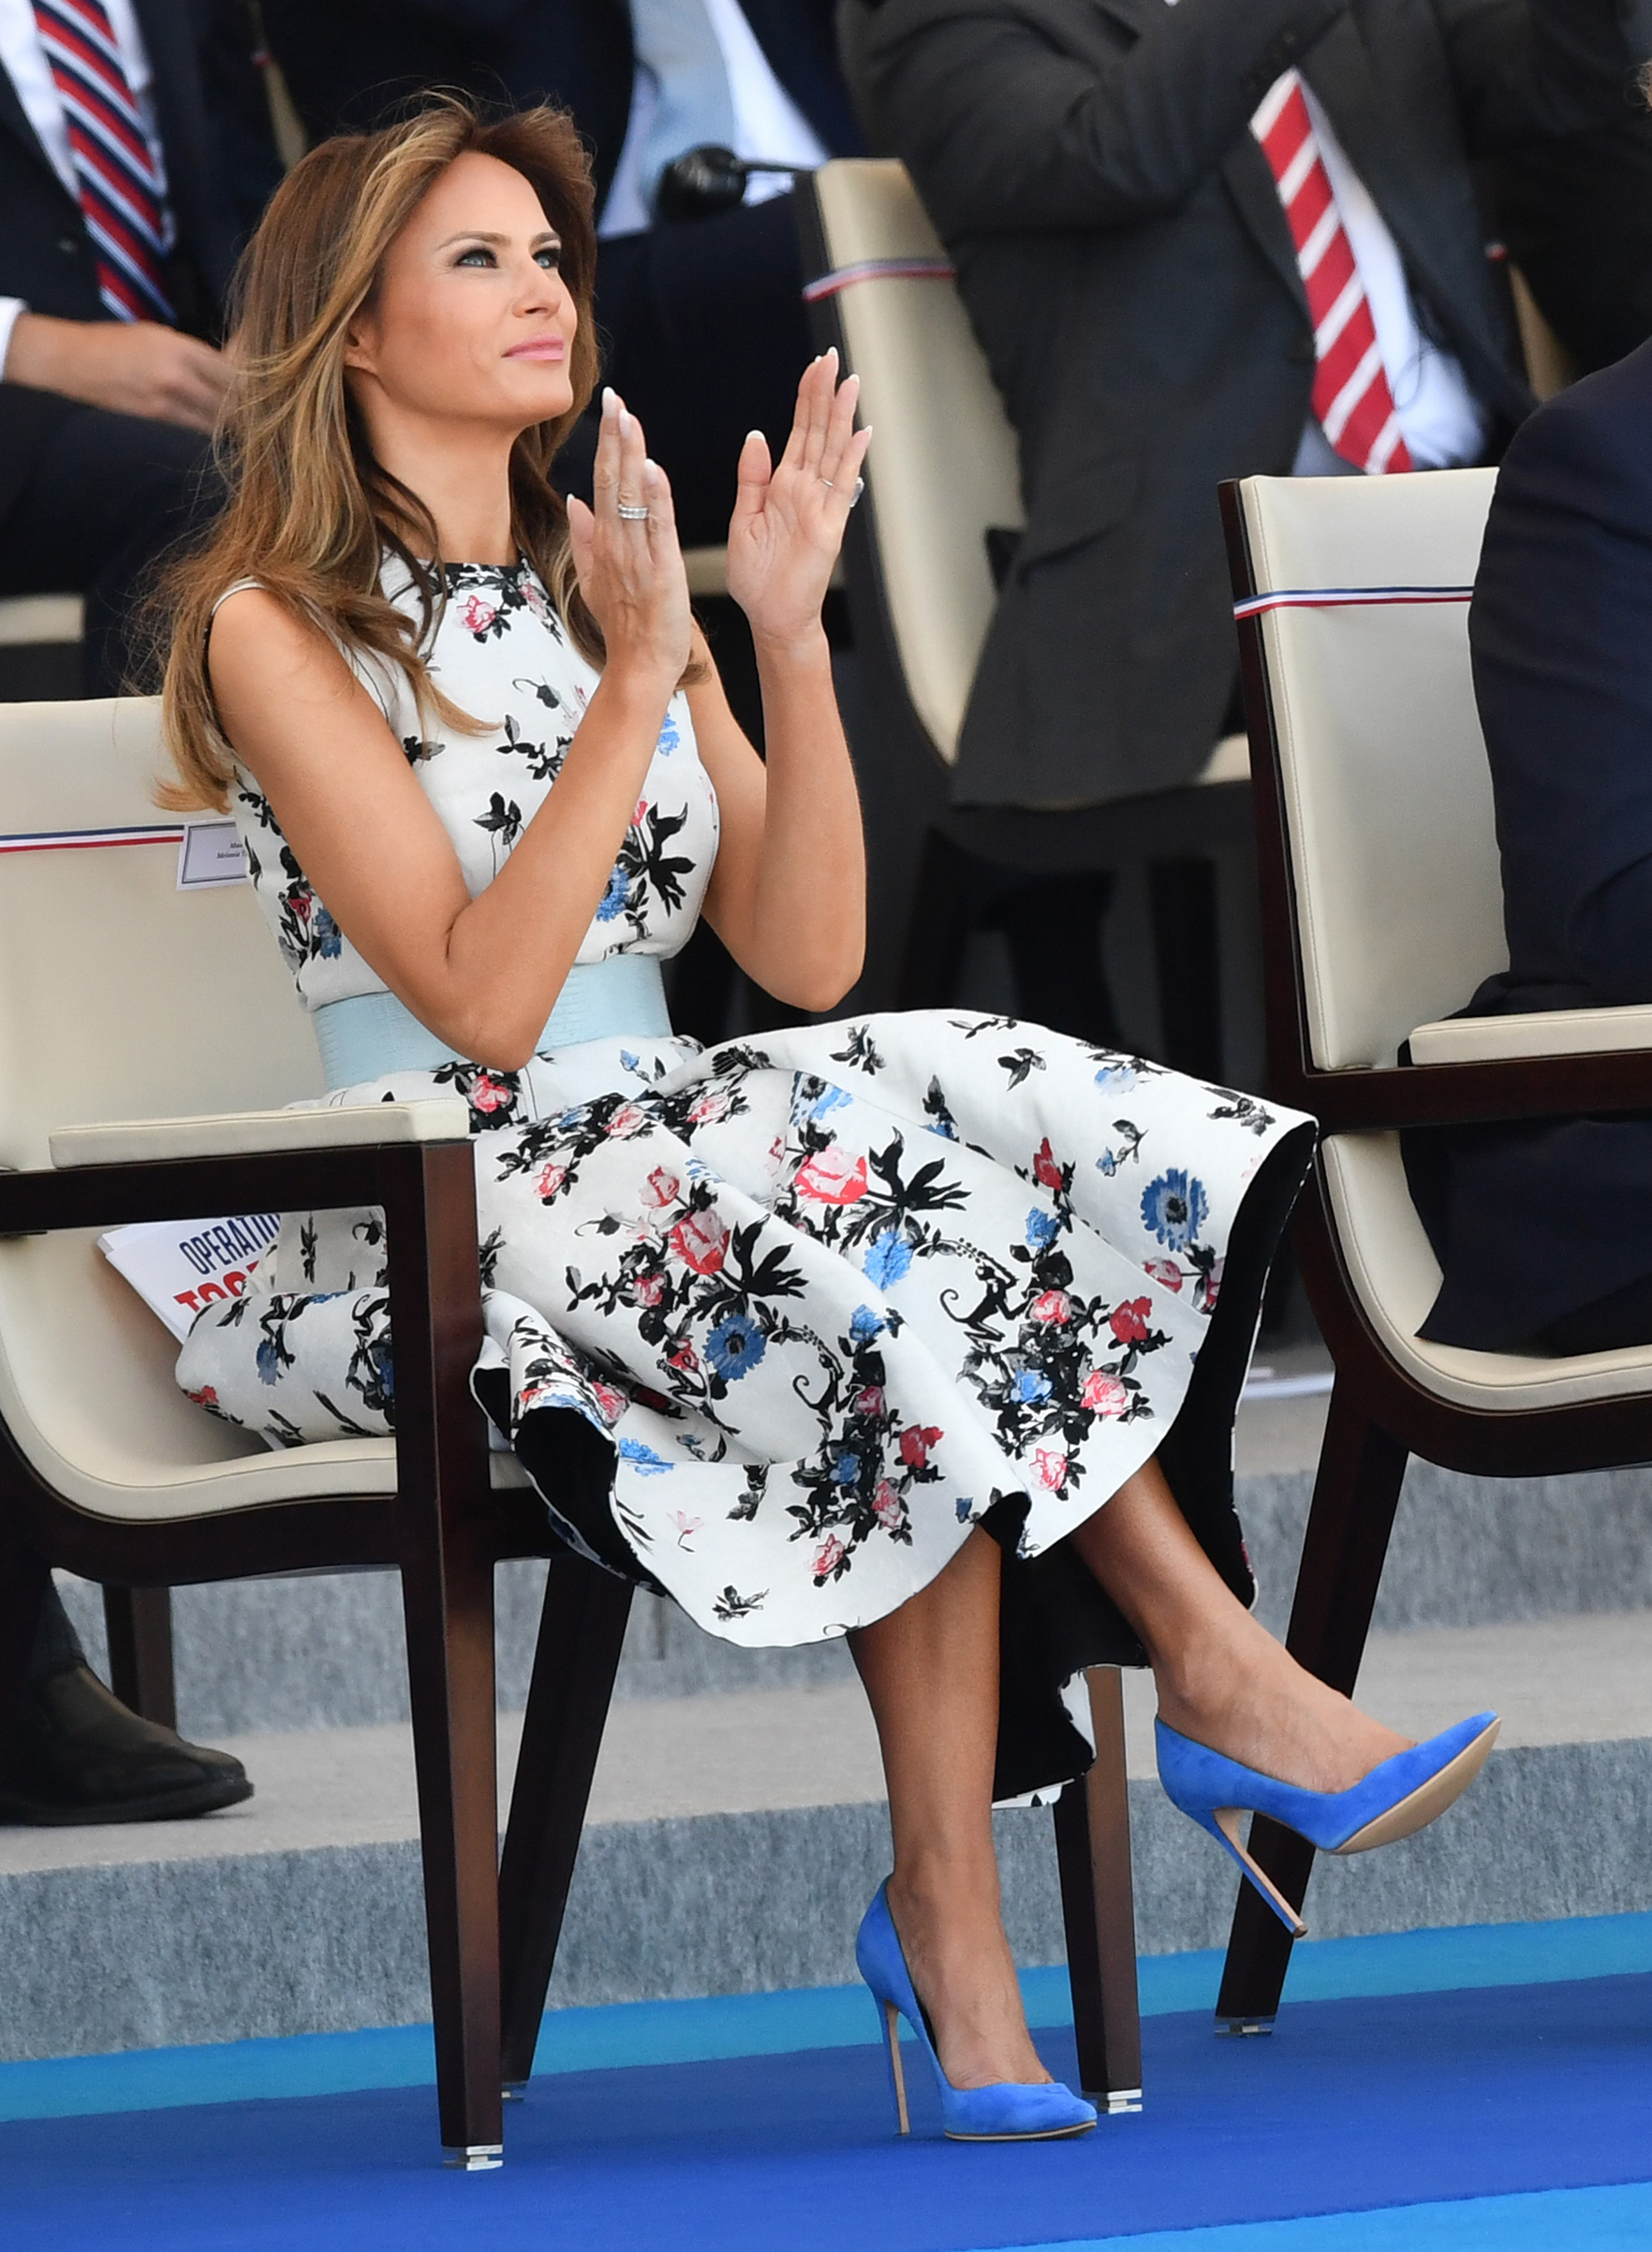 First lady Melania Trump wears a Valentino dress and Manolo Blahnik shoes, while attending the annual Bastille Day military parade along Avenue des Champs-Elysees in Paris, France on July 14, 2017.